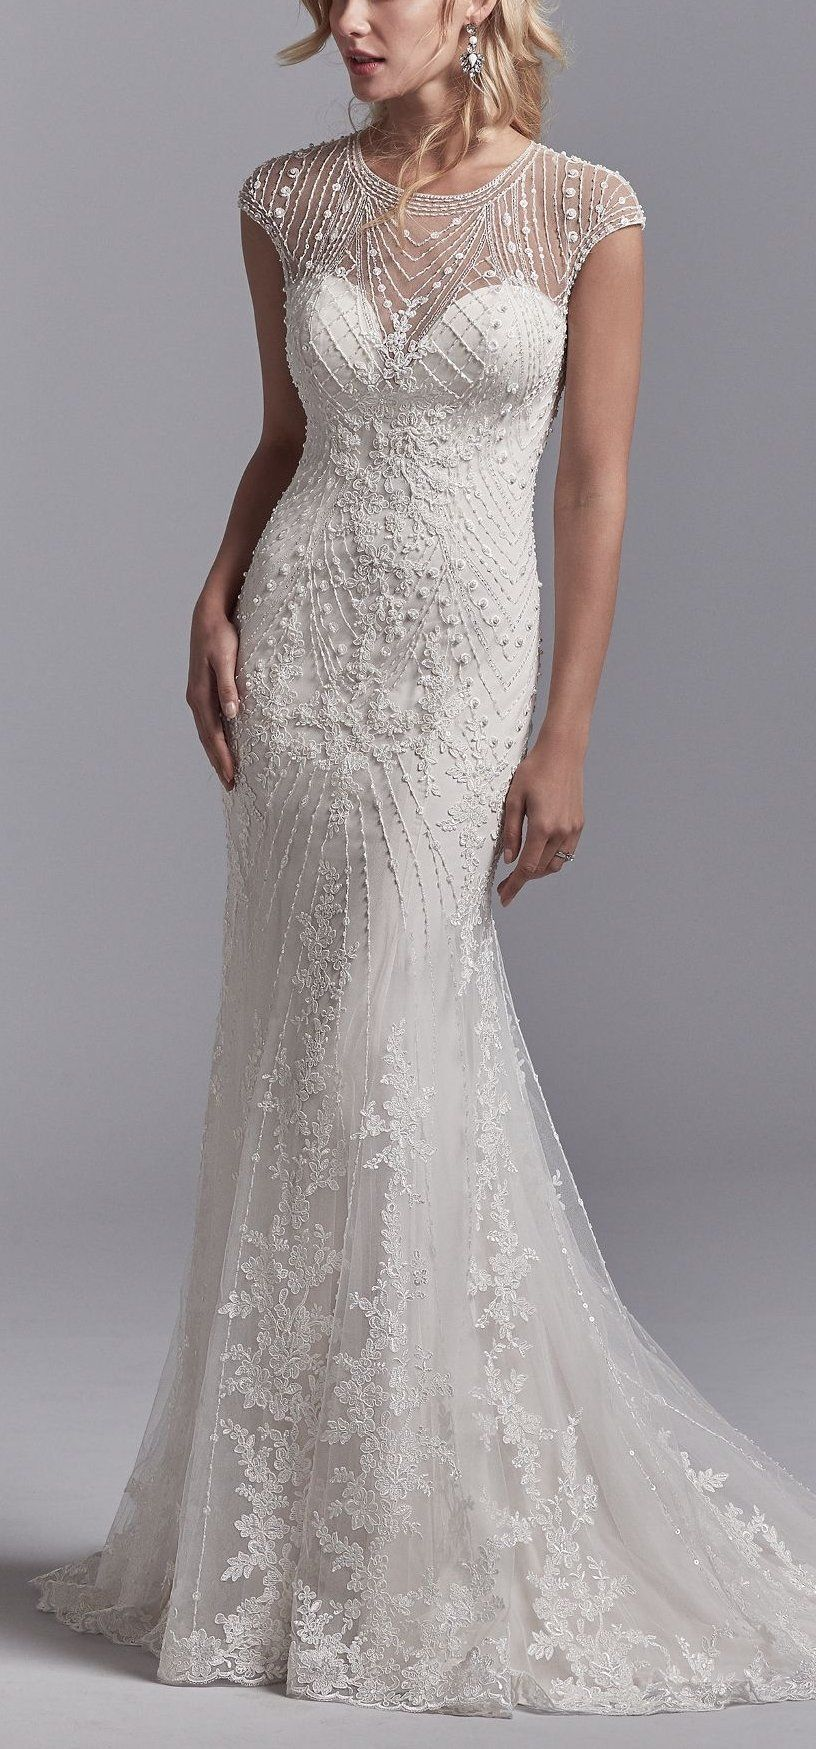 14702535f79b Sottero and Midgley - GRADY, This vintage-inspired wedding dress features a  tulle overlay accented in geometric lace motifs with beading and pearls, ...